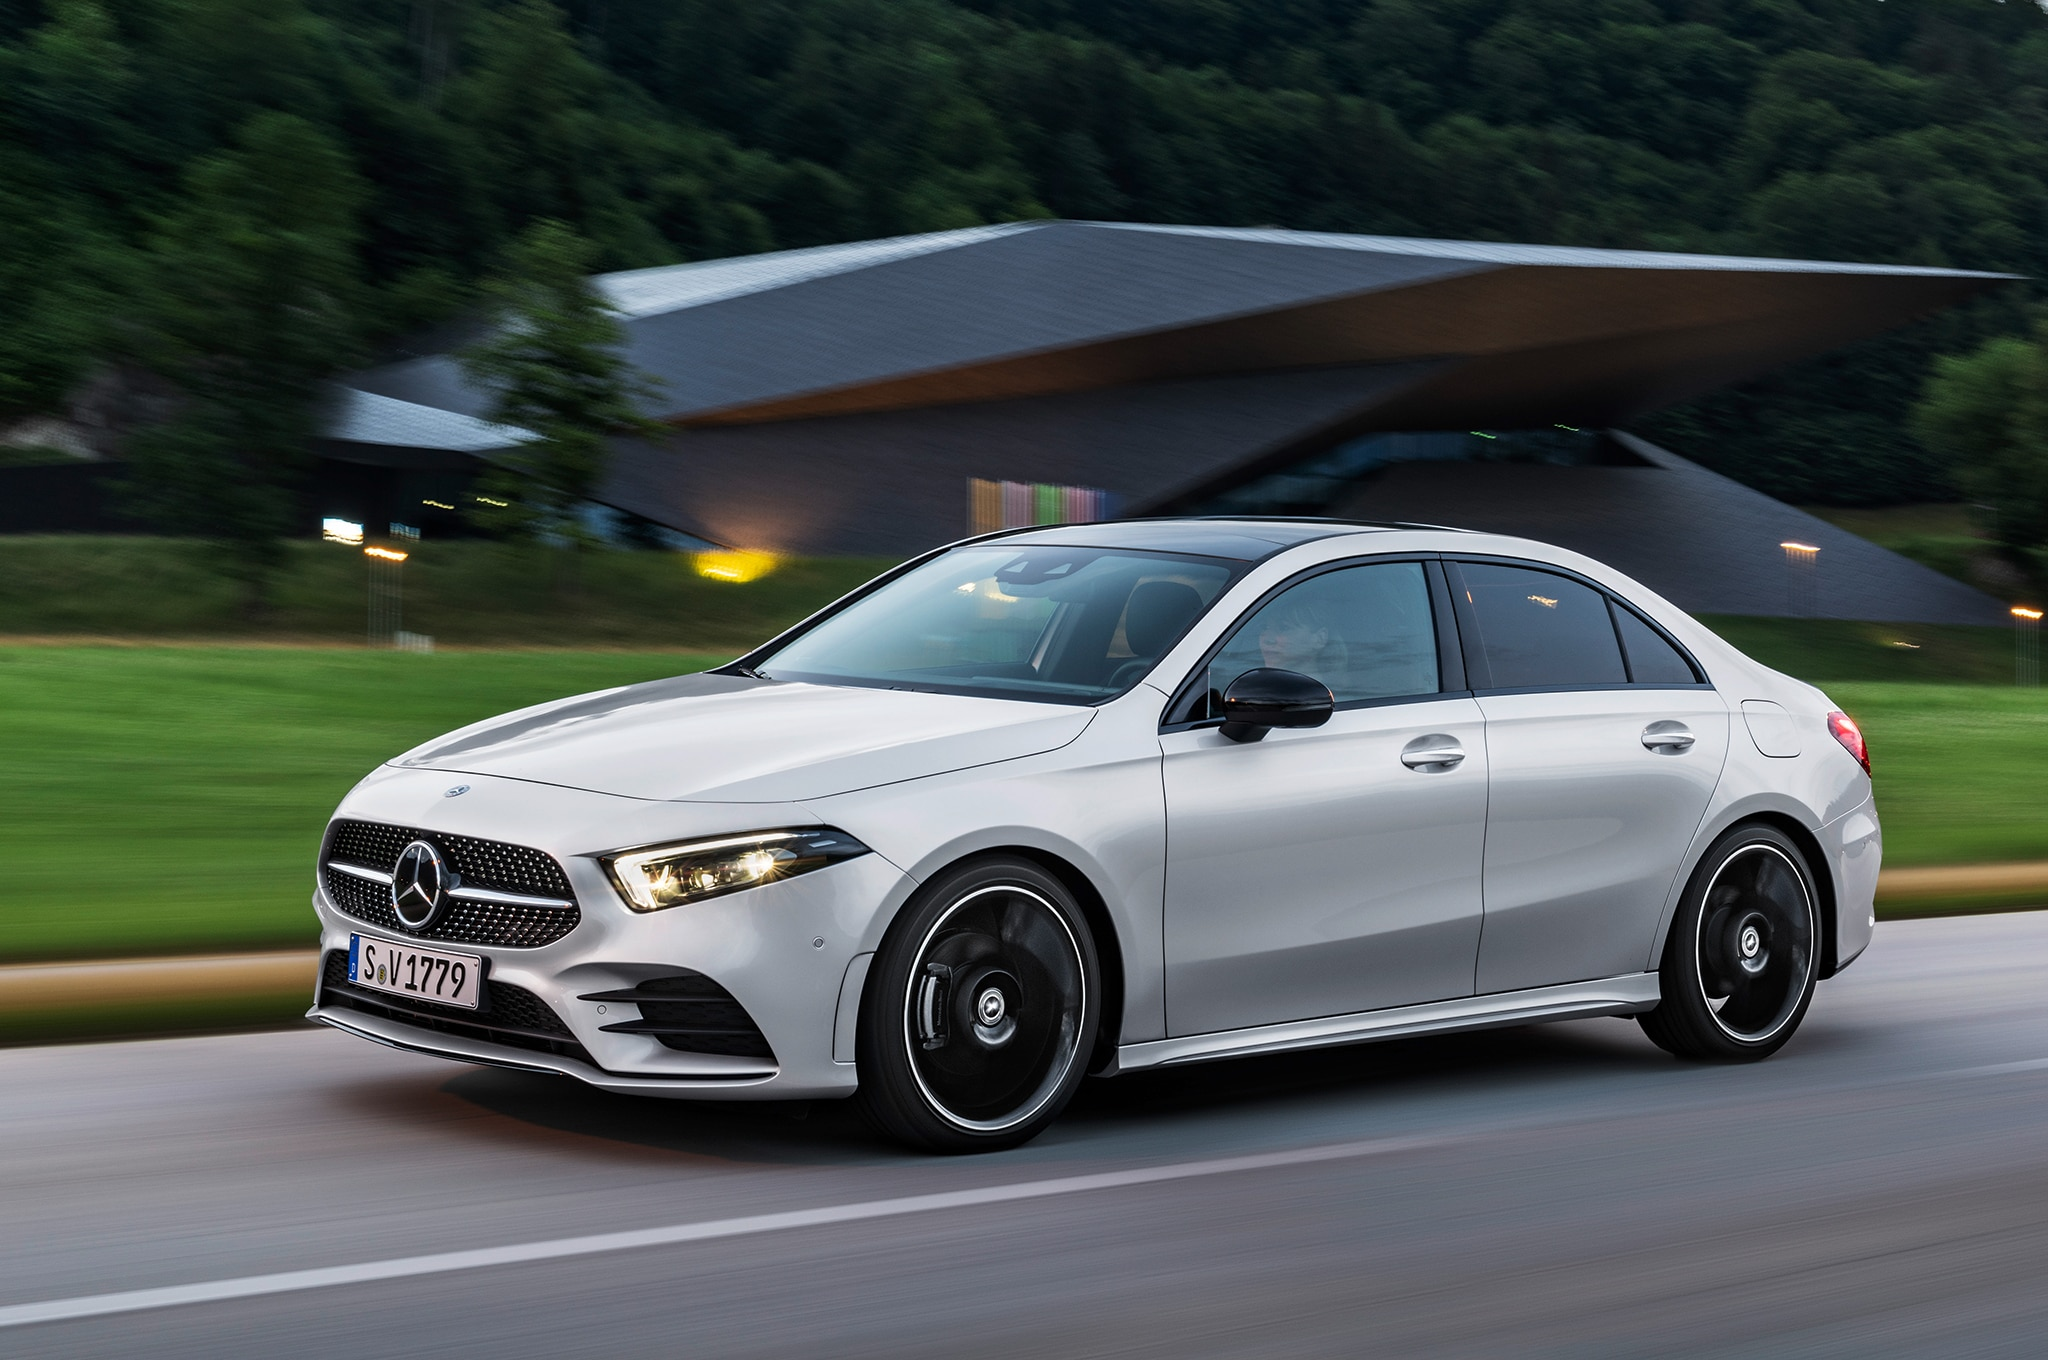 2019 Mercedes Benz A Class Sedan Front Three Quarter In Motion 6